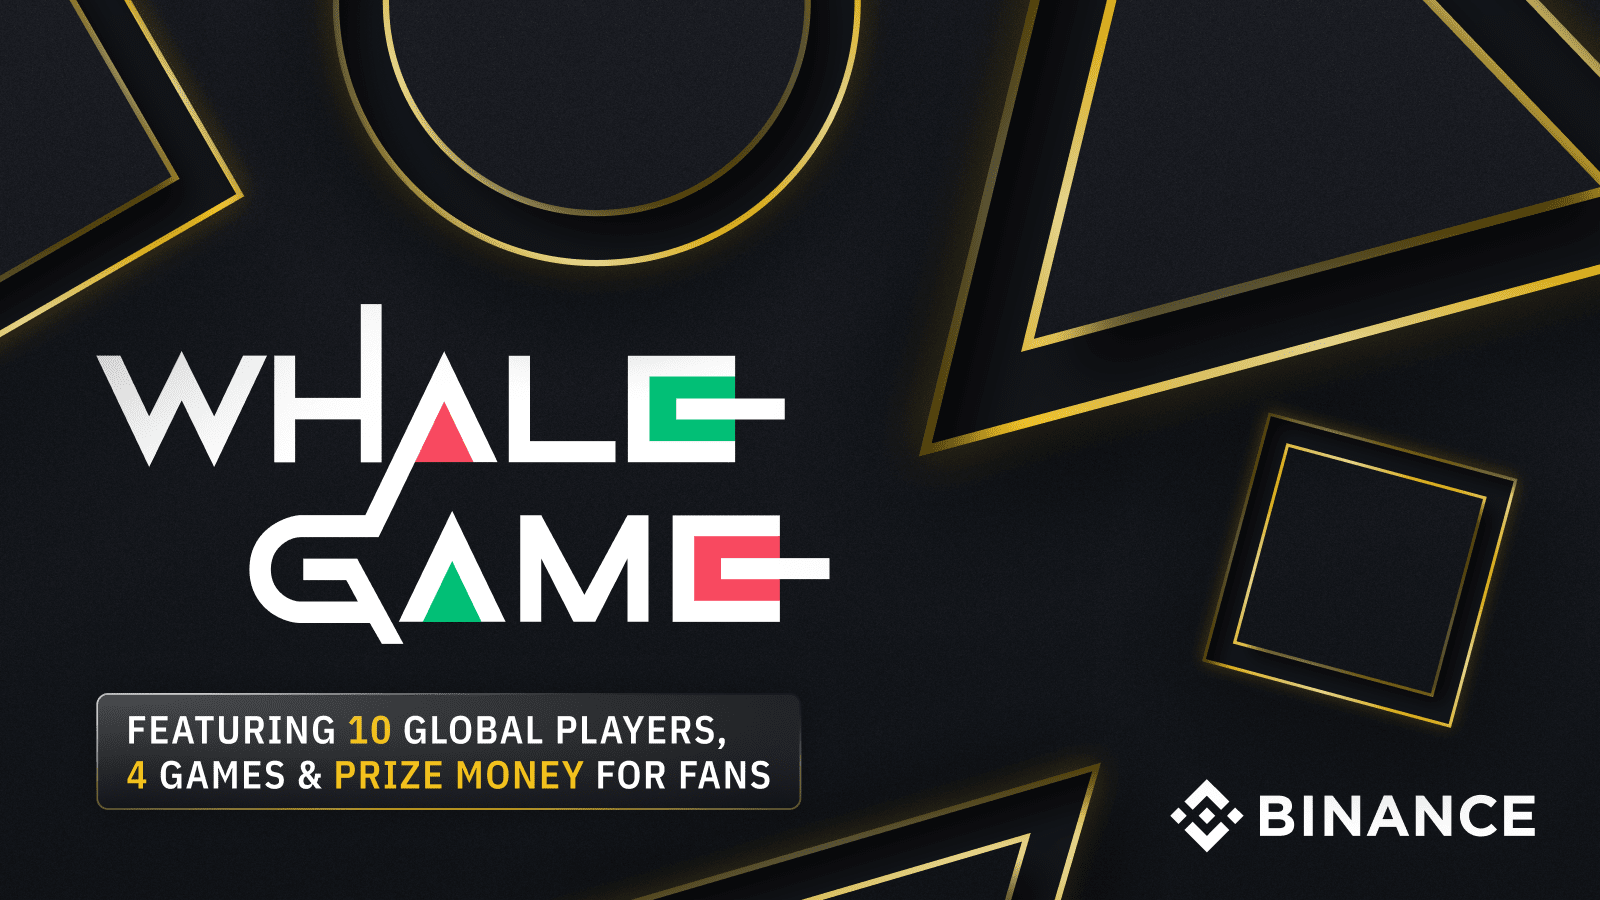 Binance Whale Game - Join the Winning Team to Share $20,000!